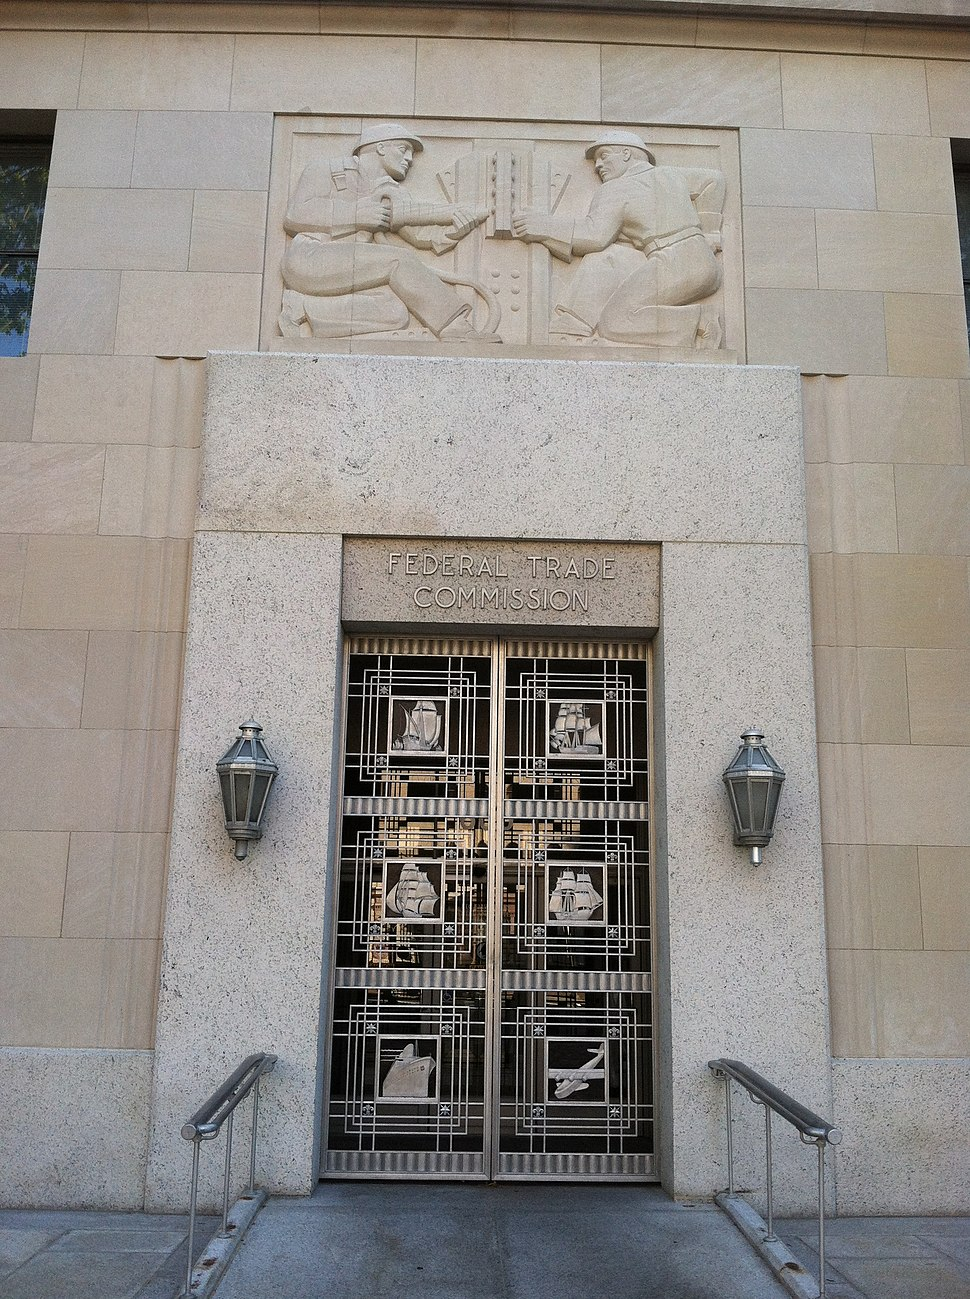 Federal Trade Commission Entrance Doorway